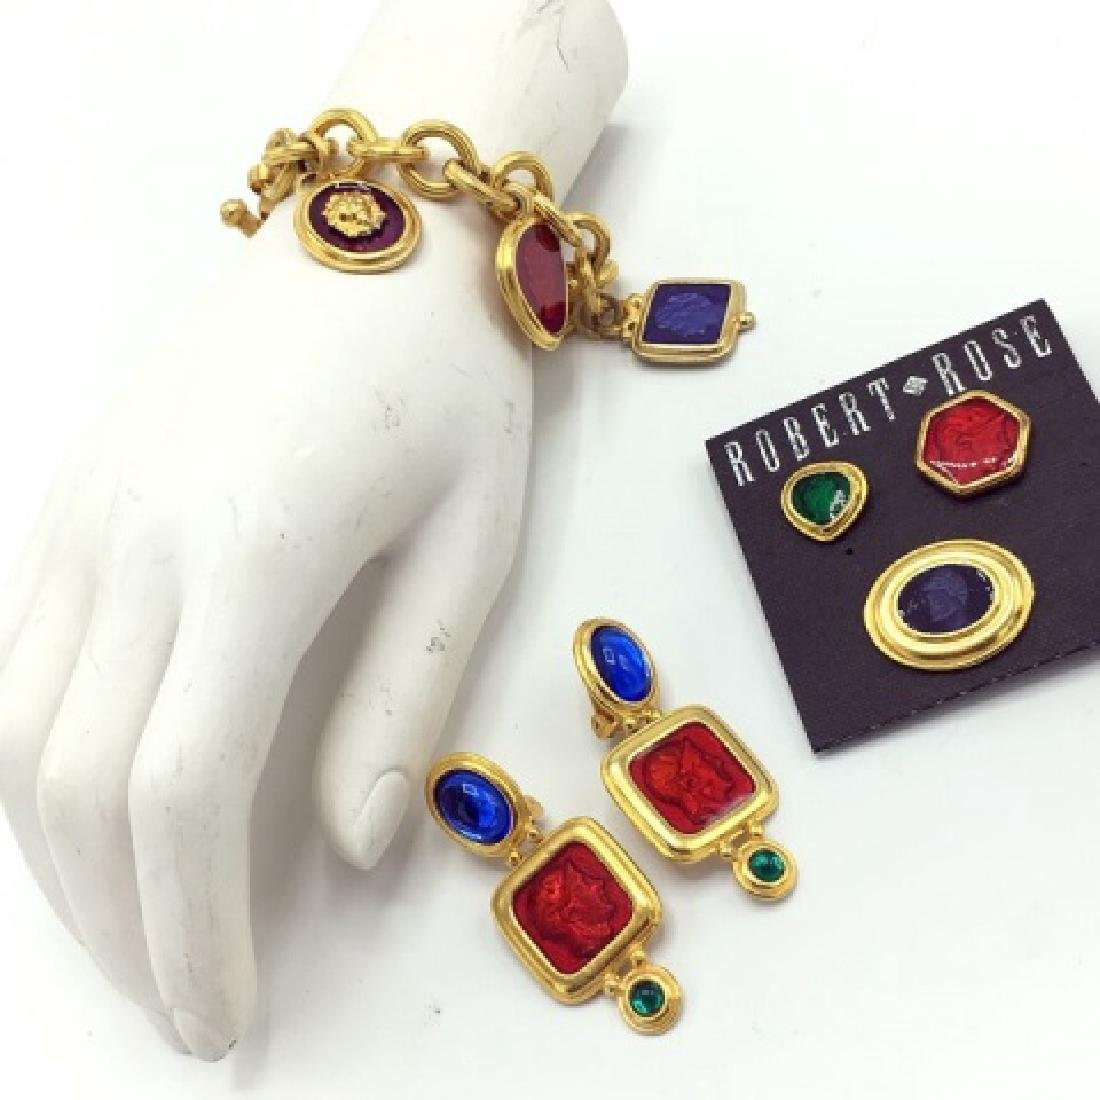 Vintage Robert Rose Roman Inspired Costume Jewelry